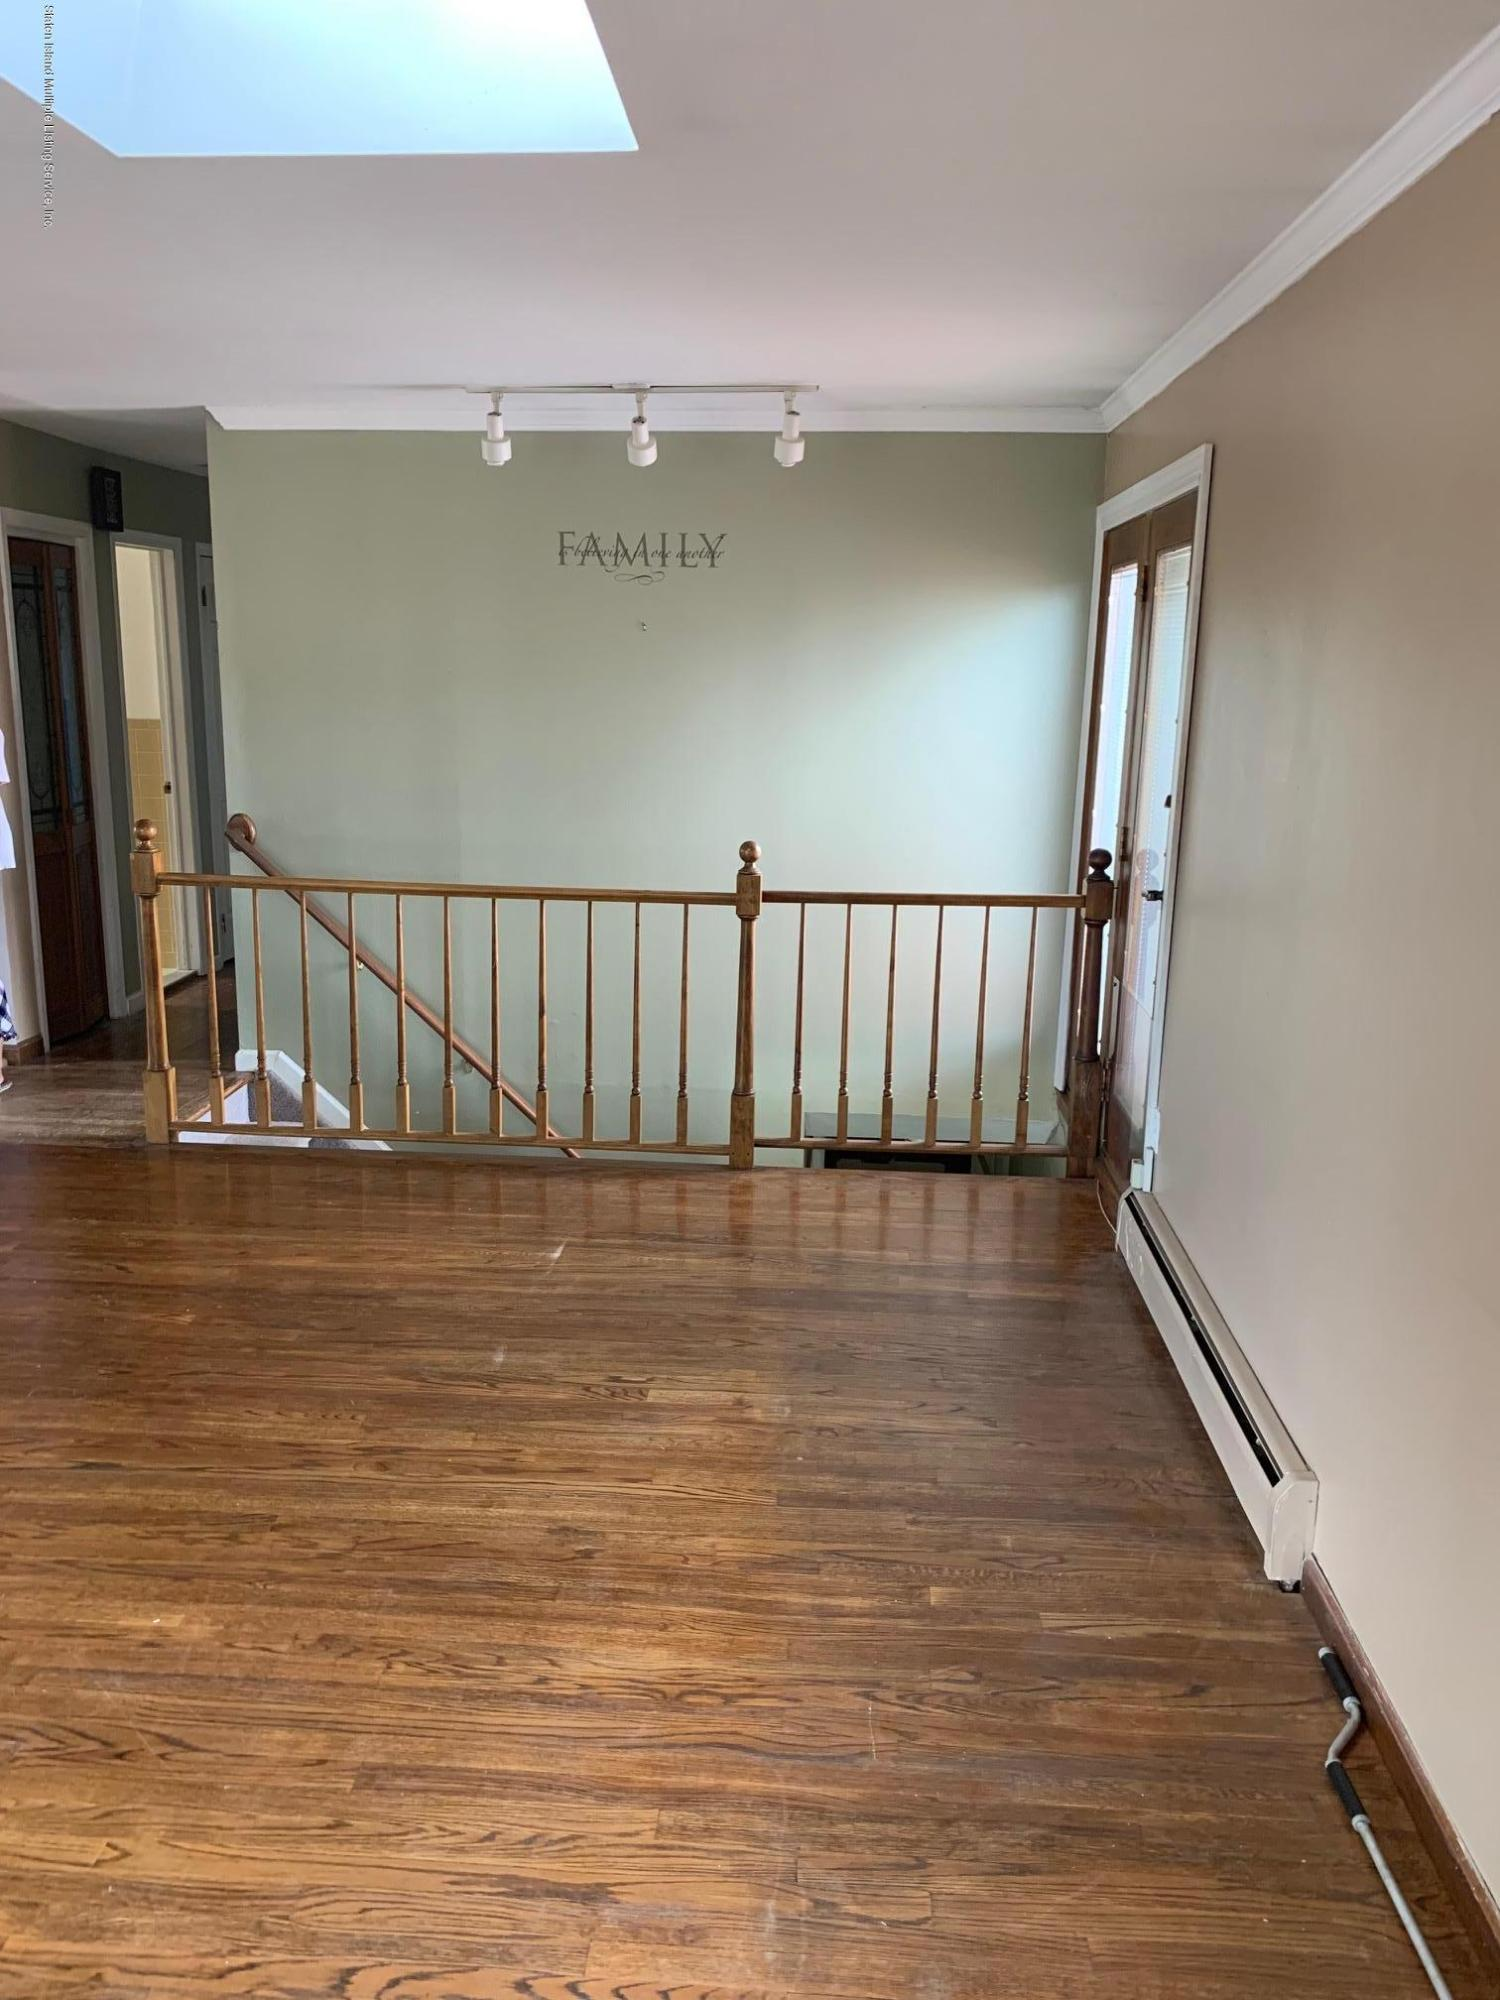 97 Twombly Avenue,Staten Island,New York,10306,United States,3 Bedrooms Bedrooms,5 Rooms Rooms,3 BathroomsBathrooms,Res-Rental,Twombly,1132004